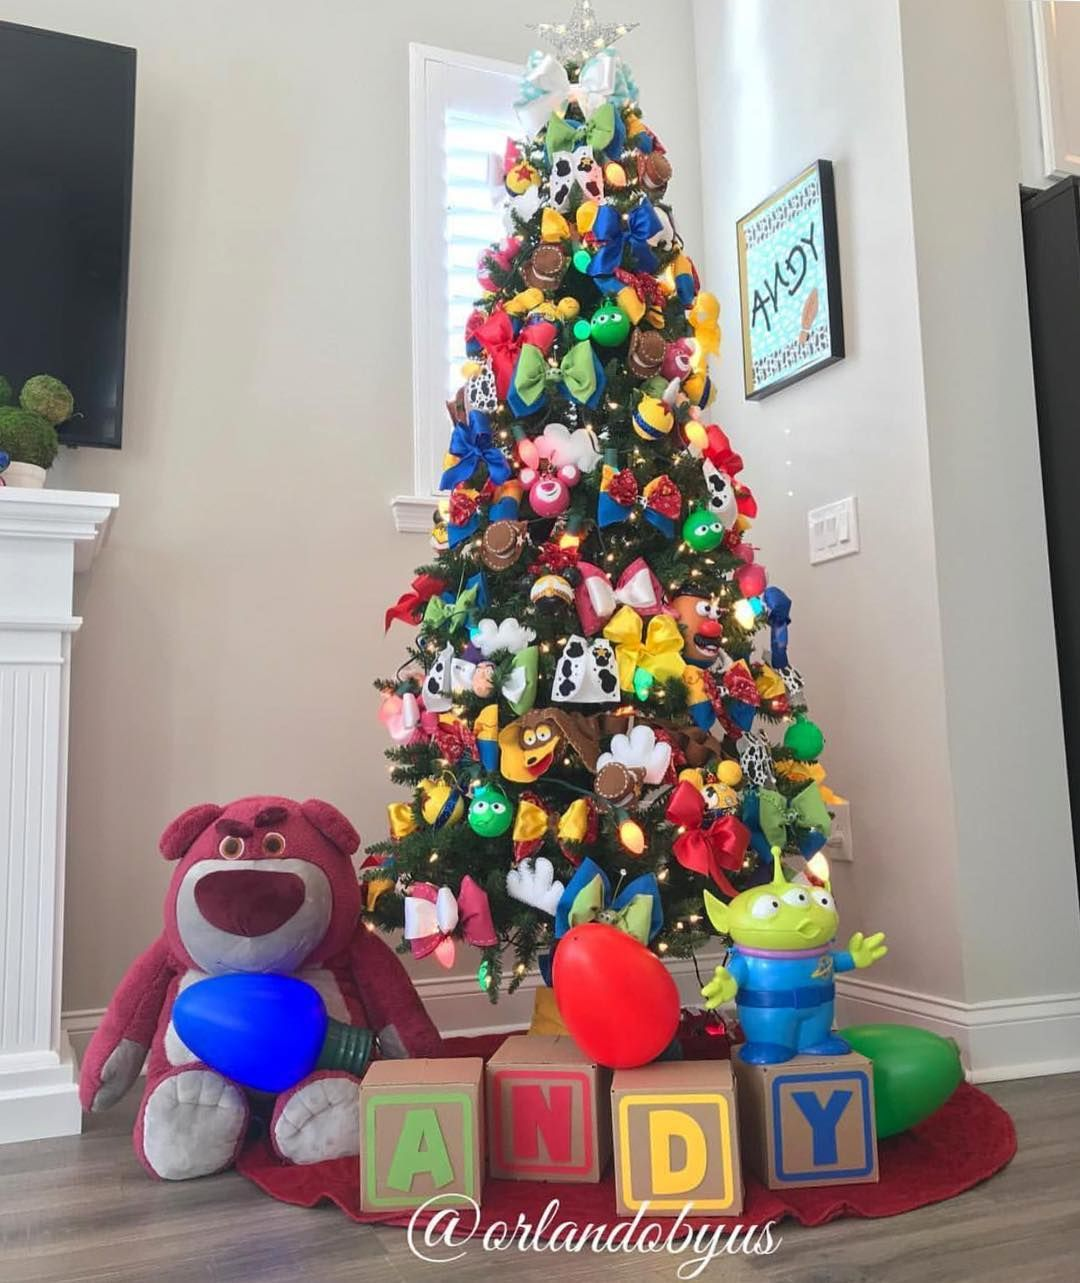 How Adorable Is This Toy Story Themed Christmas Tree From Orlandobyus We Love Disney Christmas Tree Theme Disney Christmas Tree Disney Christmas Decorations